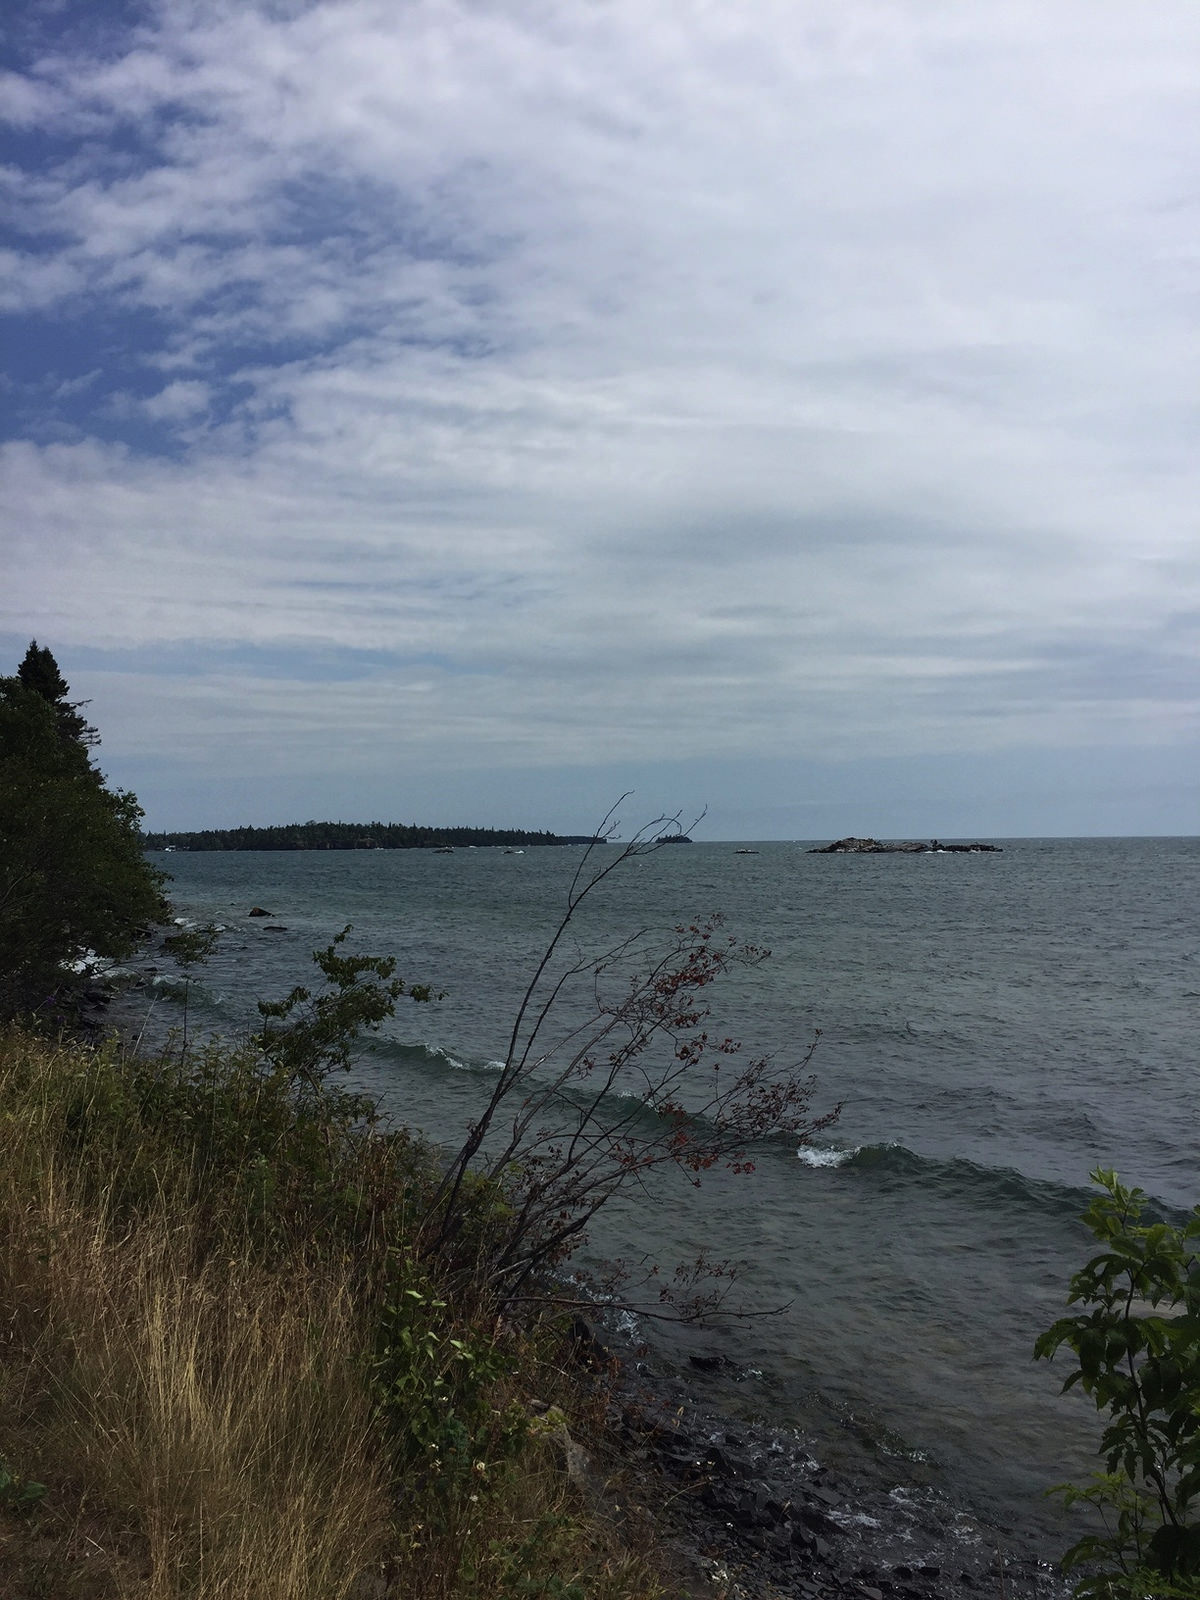 Lake Superior view from Silver Islet Ontario near Thunder Bay